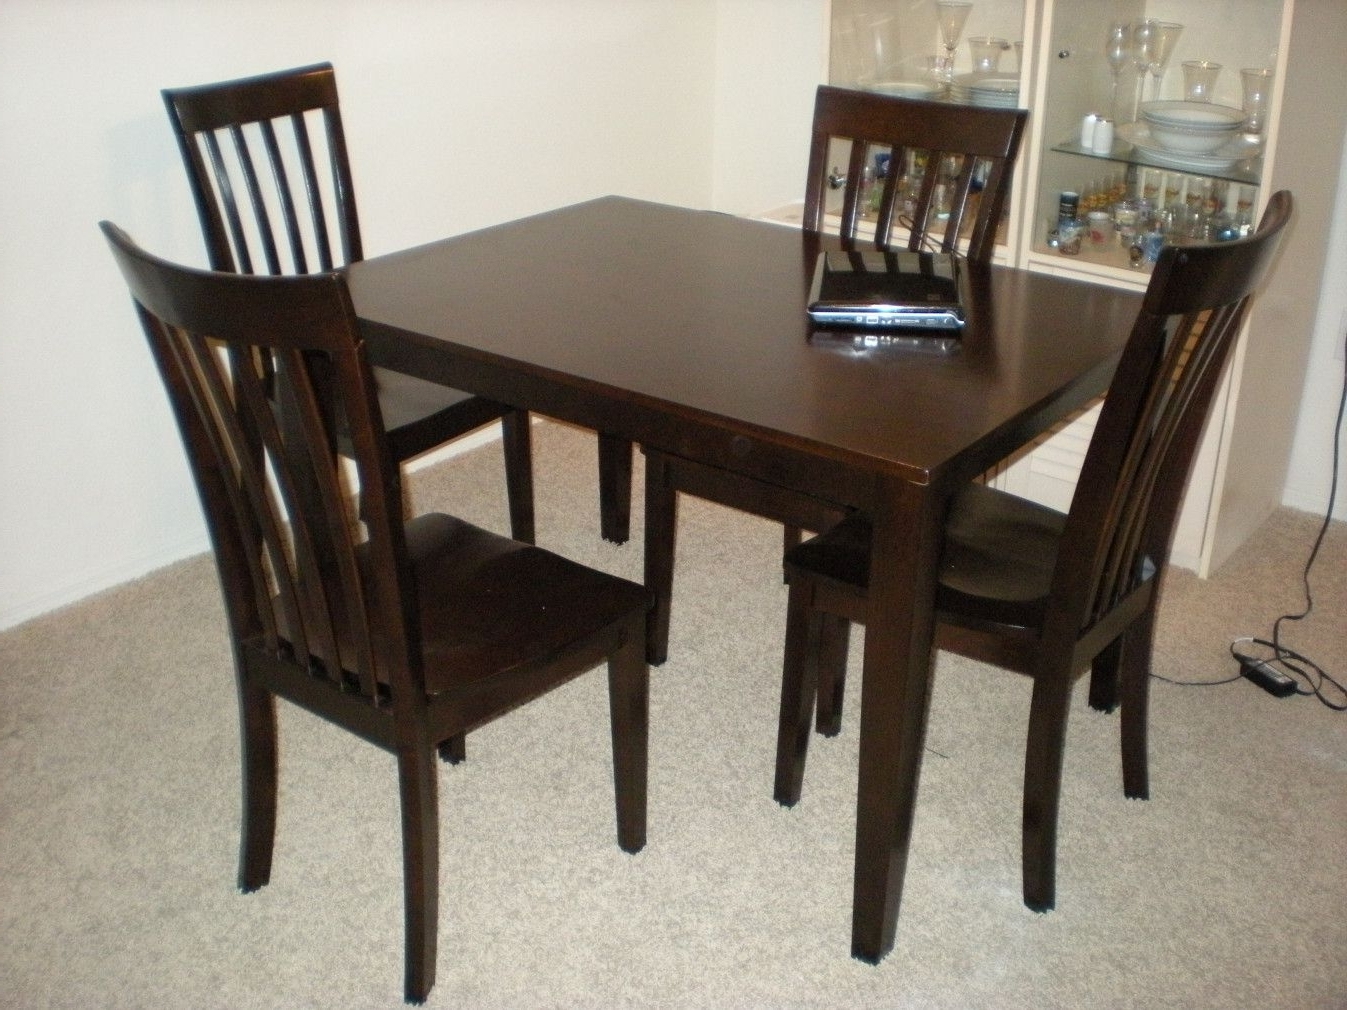 Newest Second Hand Oak Dining Chairs With Regard To 55+ Second Hand Oak Dining Table And Chairs – Vintage Modern (View 4 of 25)